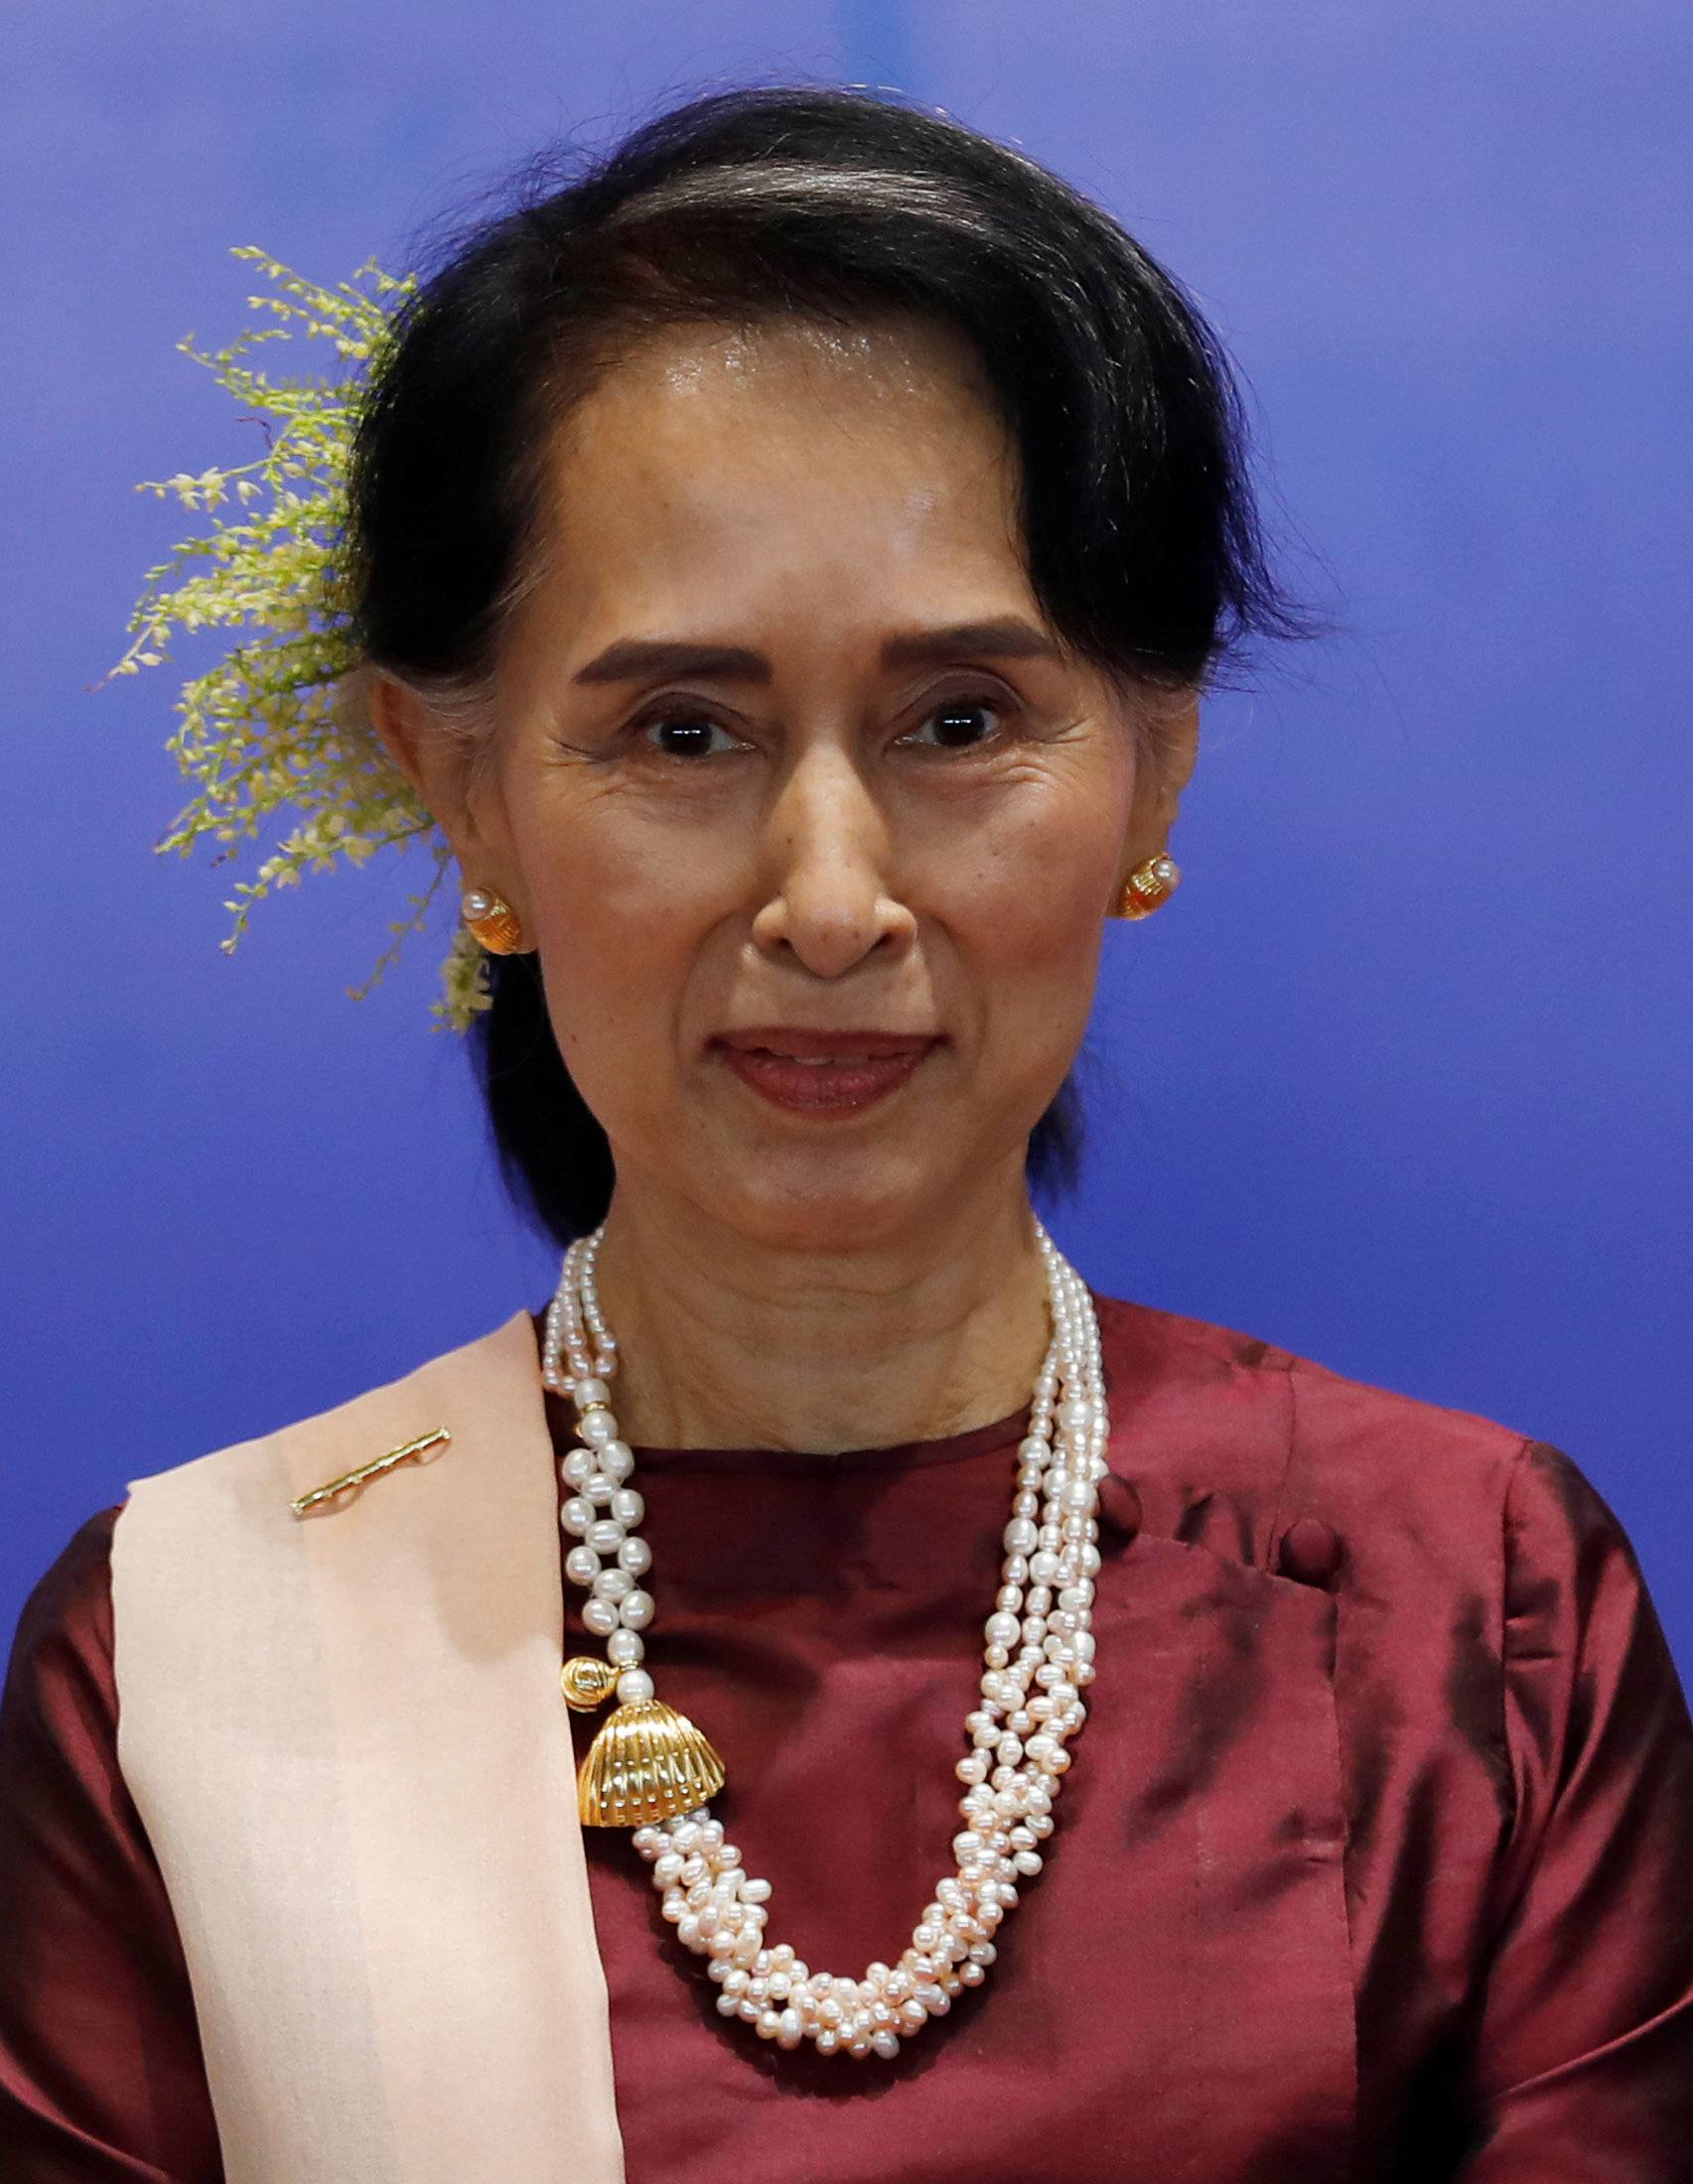 State Councilor Aung San Suu Kyi (C) poses for a photo at a photo session during the Second Anniversary of Nationwide Ceasefire Agreement (NCA) in Naypyitaw